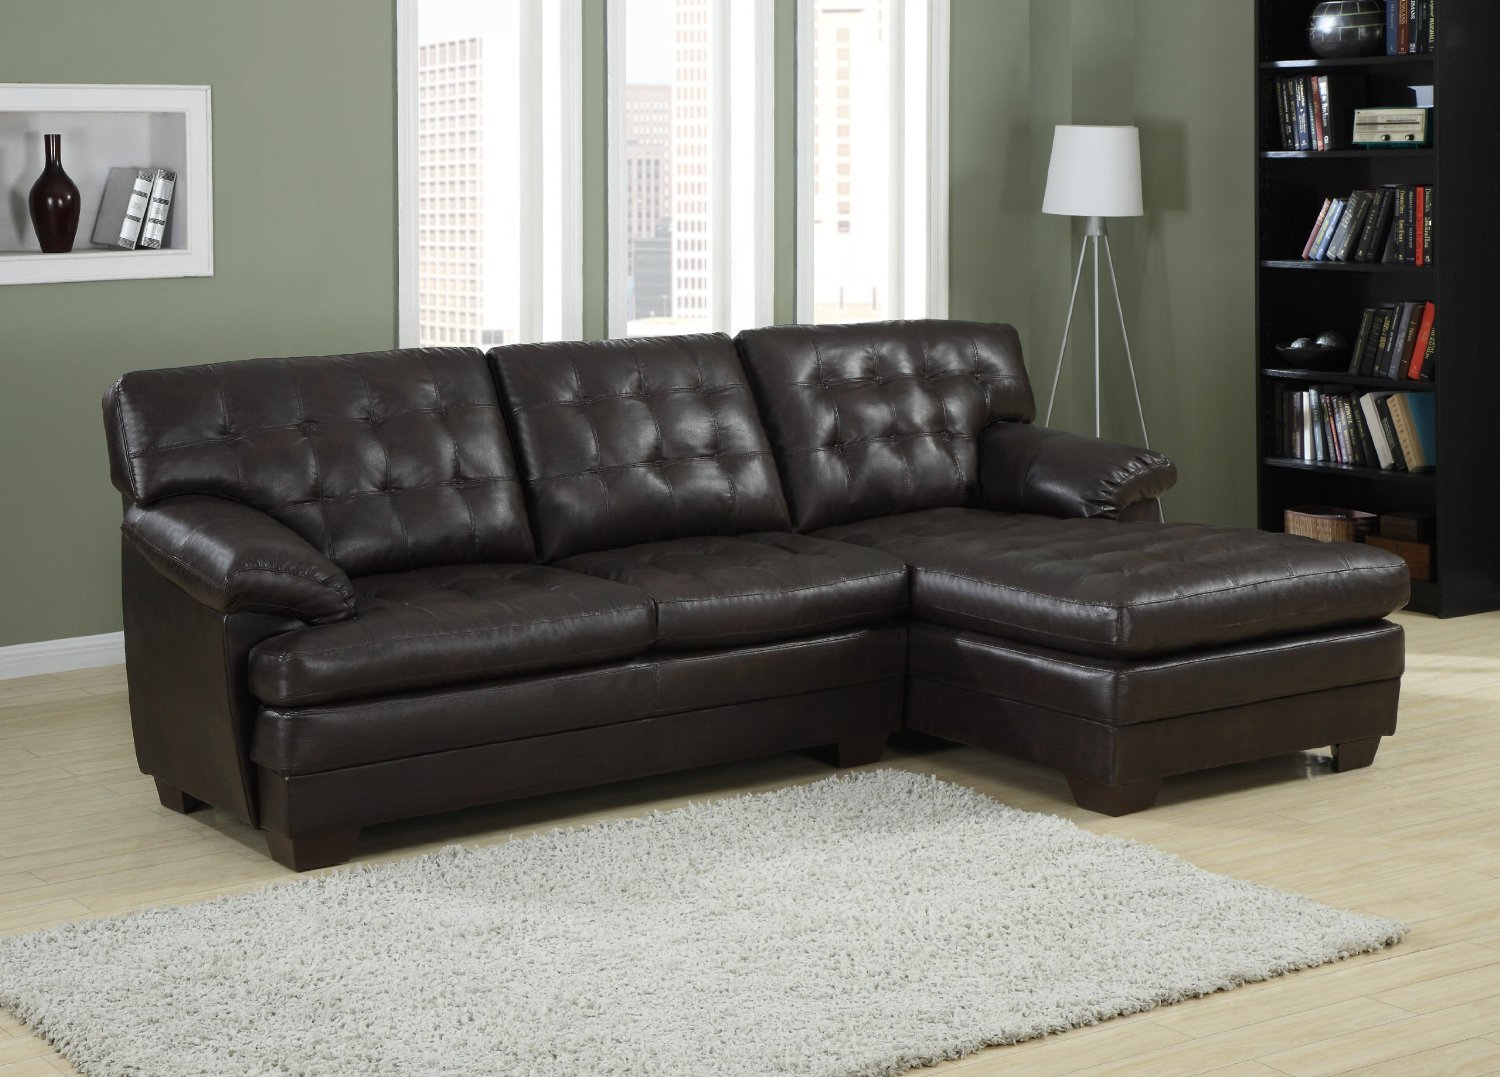 Amazon.com: Channel-Tufted 2 Piece Sectional Sofa Set in Dark Brown Bonded  Leather by Homelegance: Kitchen & Dining